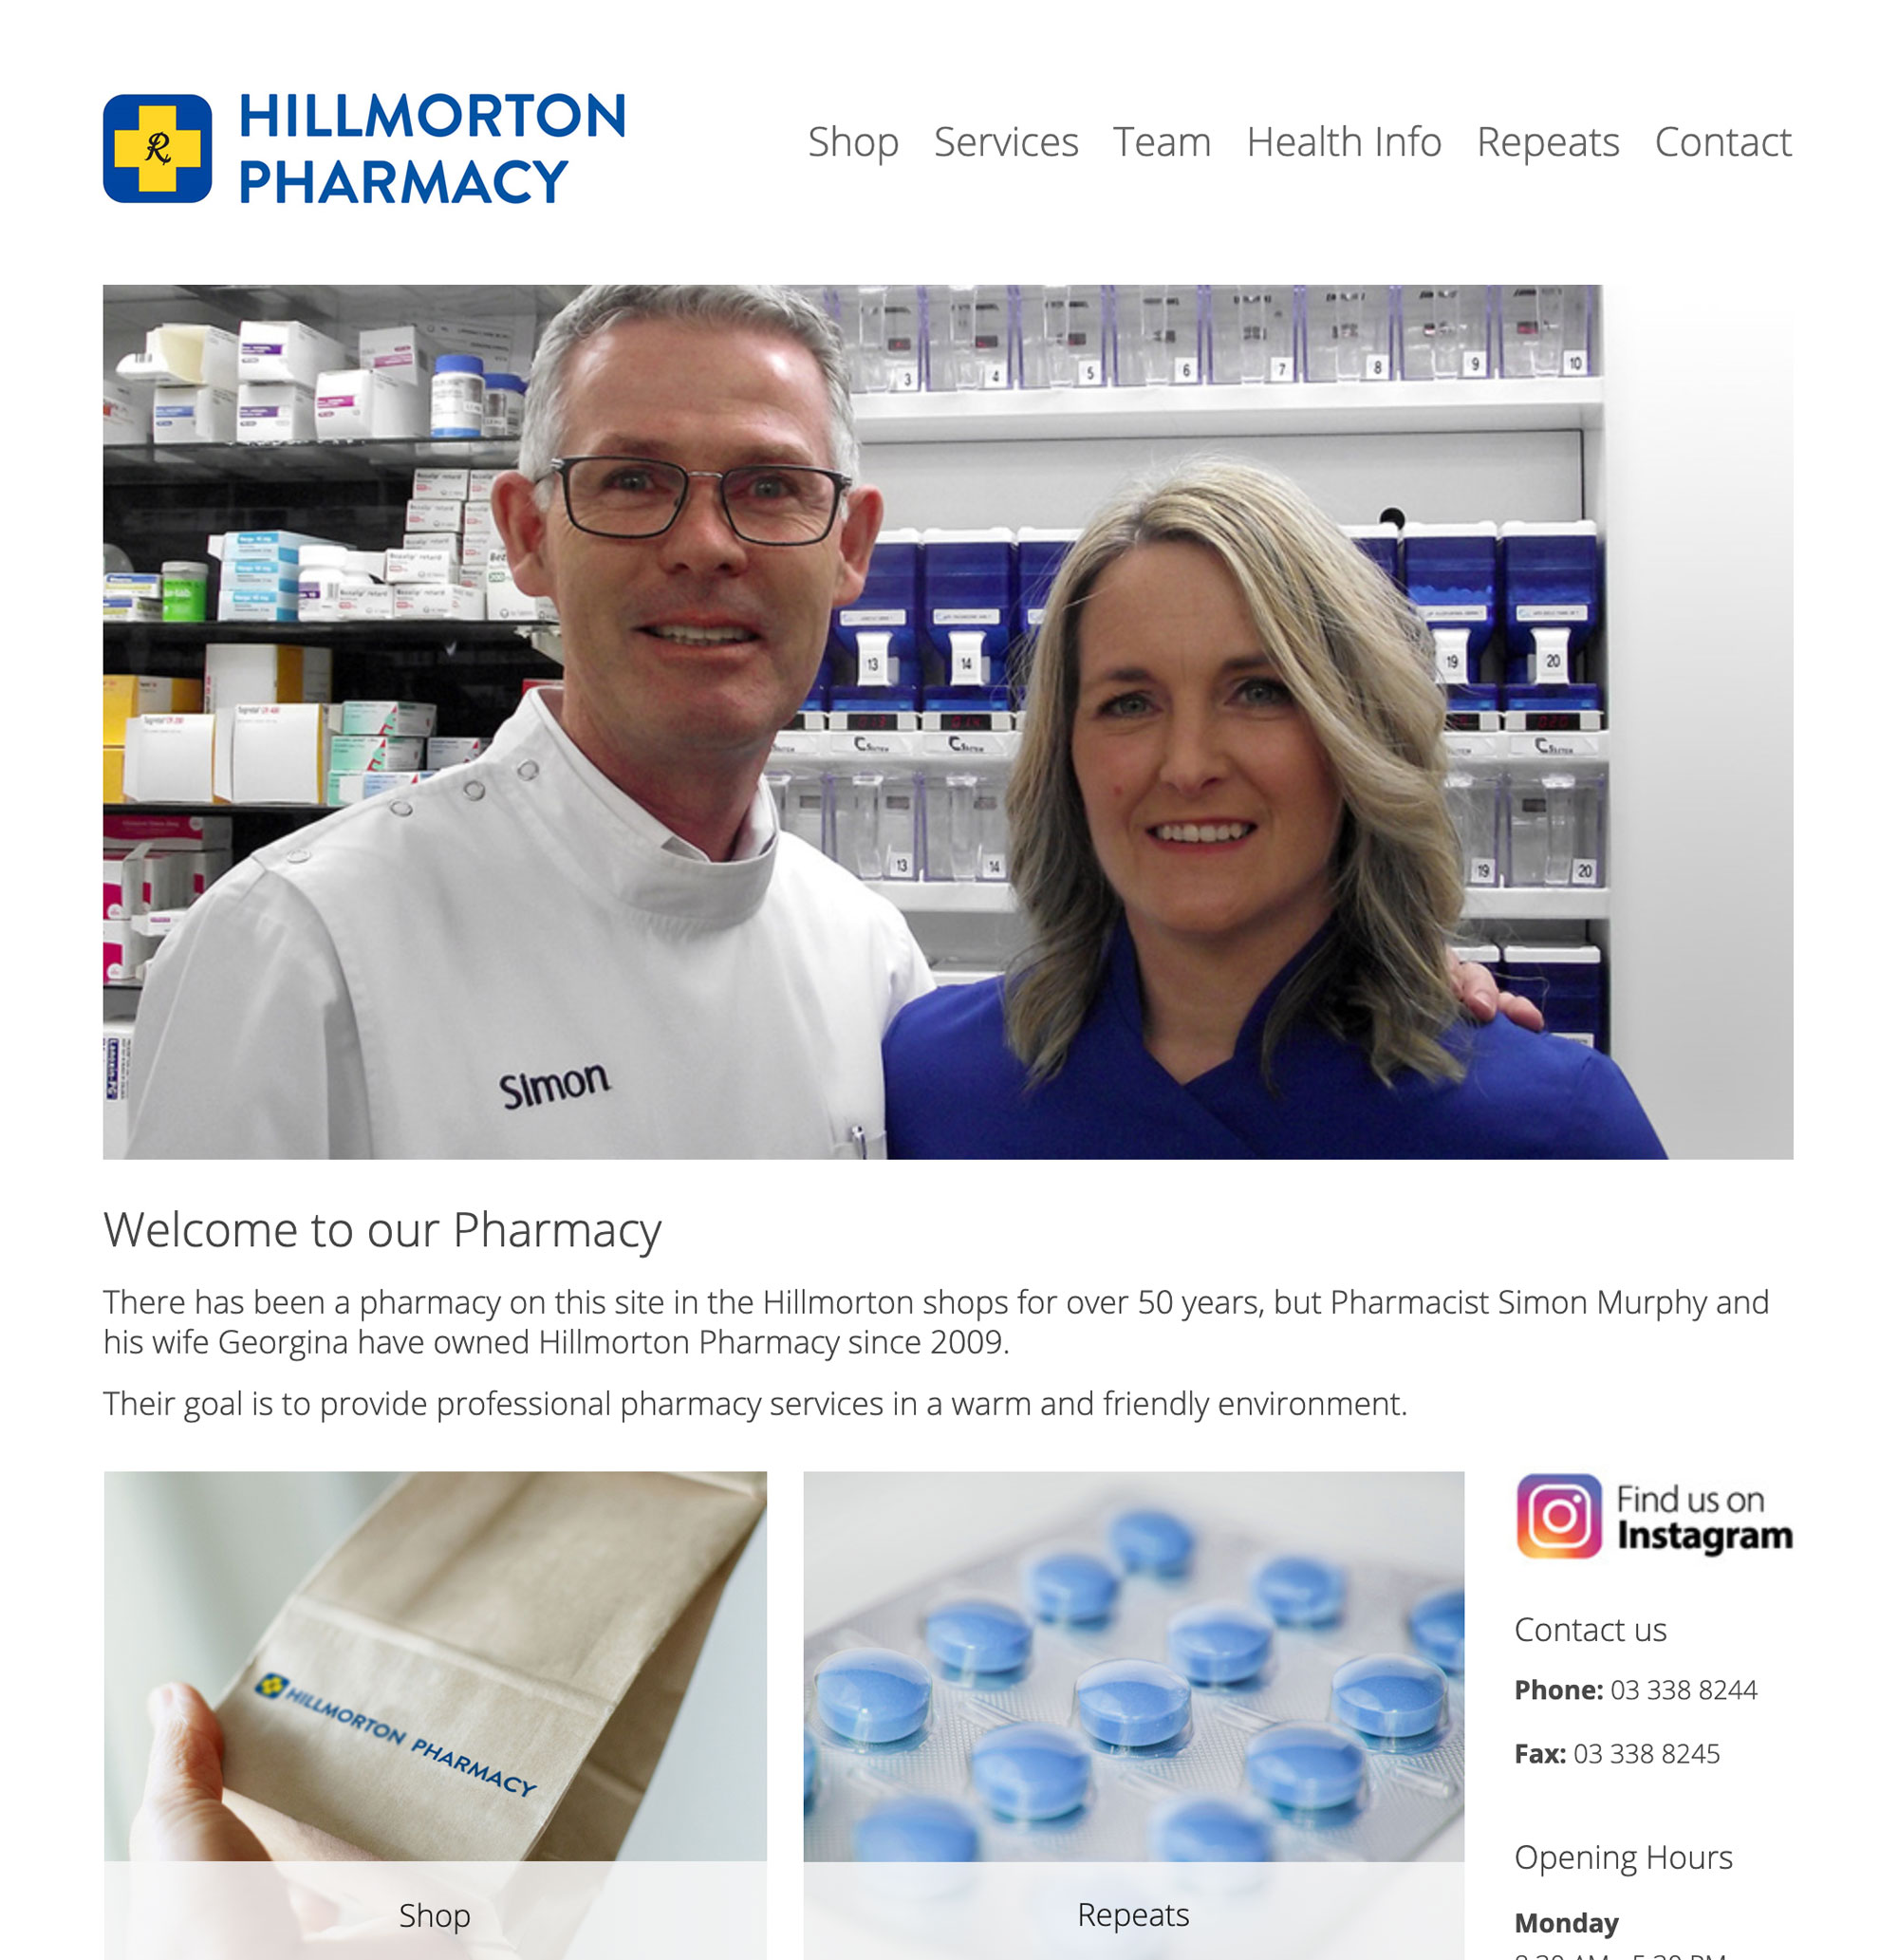 Hillmorton Pharmacy